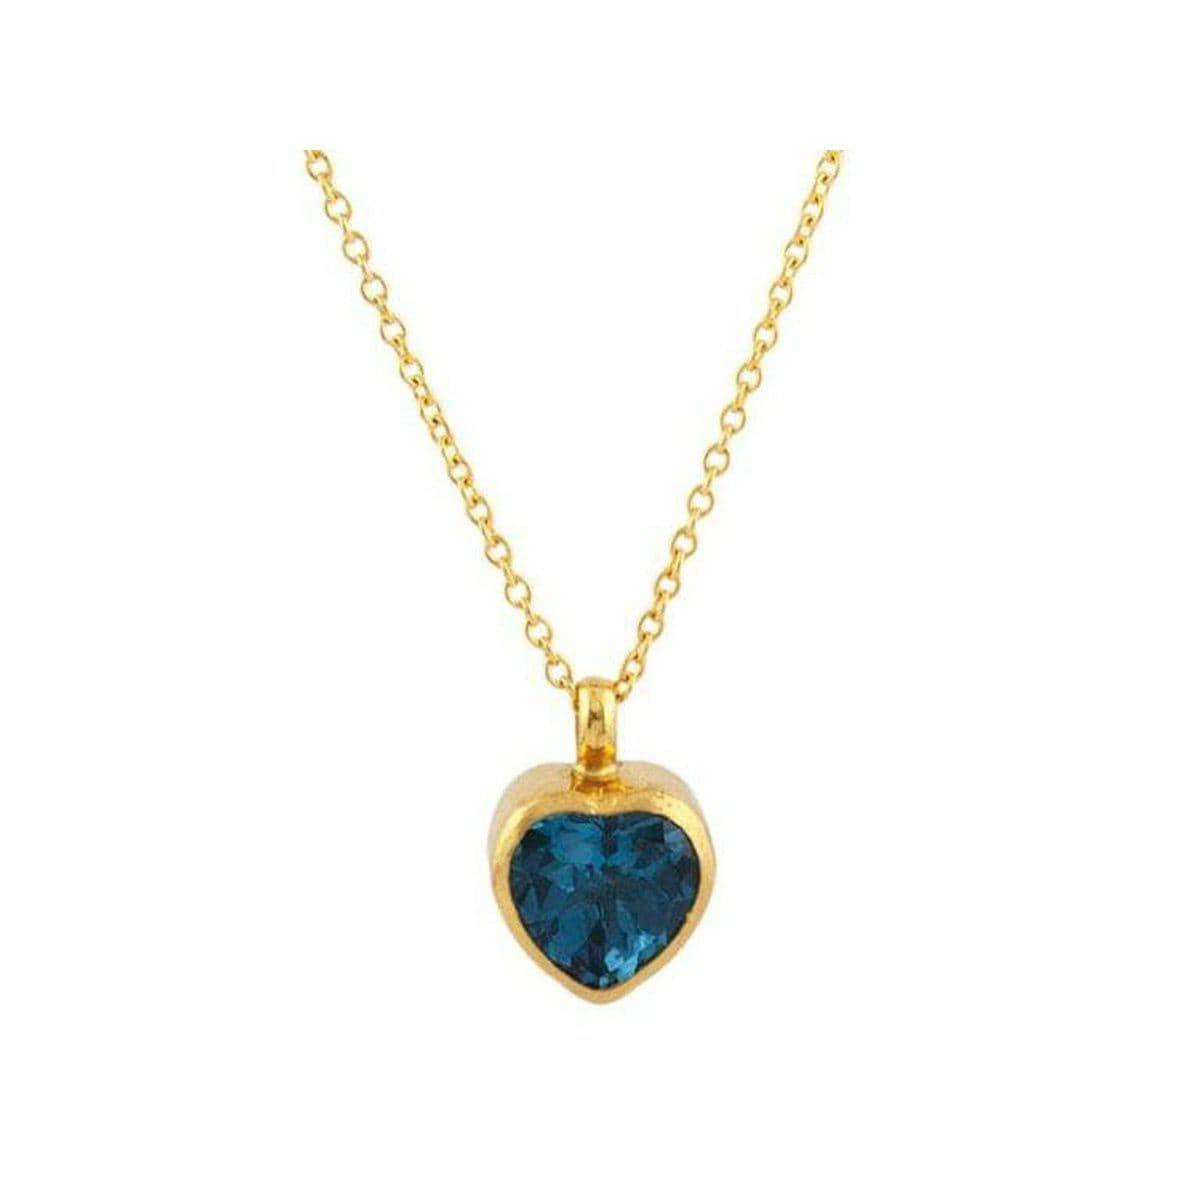 Juju 24K Gold Blue Topaz Necklace - N-U22770-BT-GURHAN-Renee Taylor Gallery